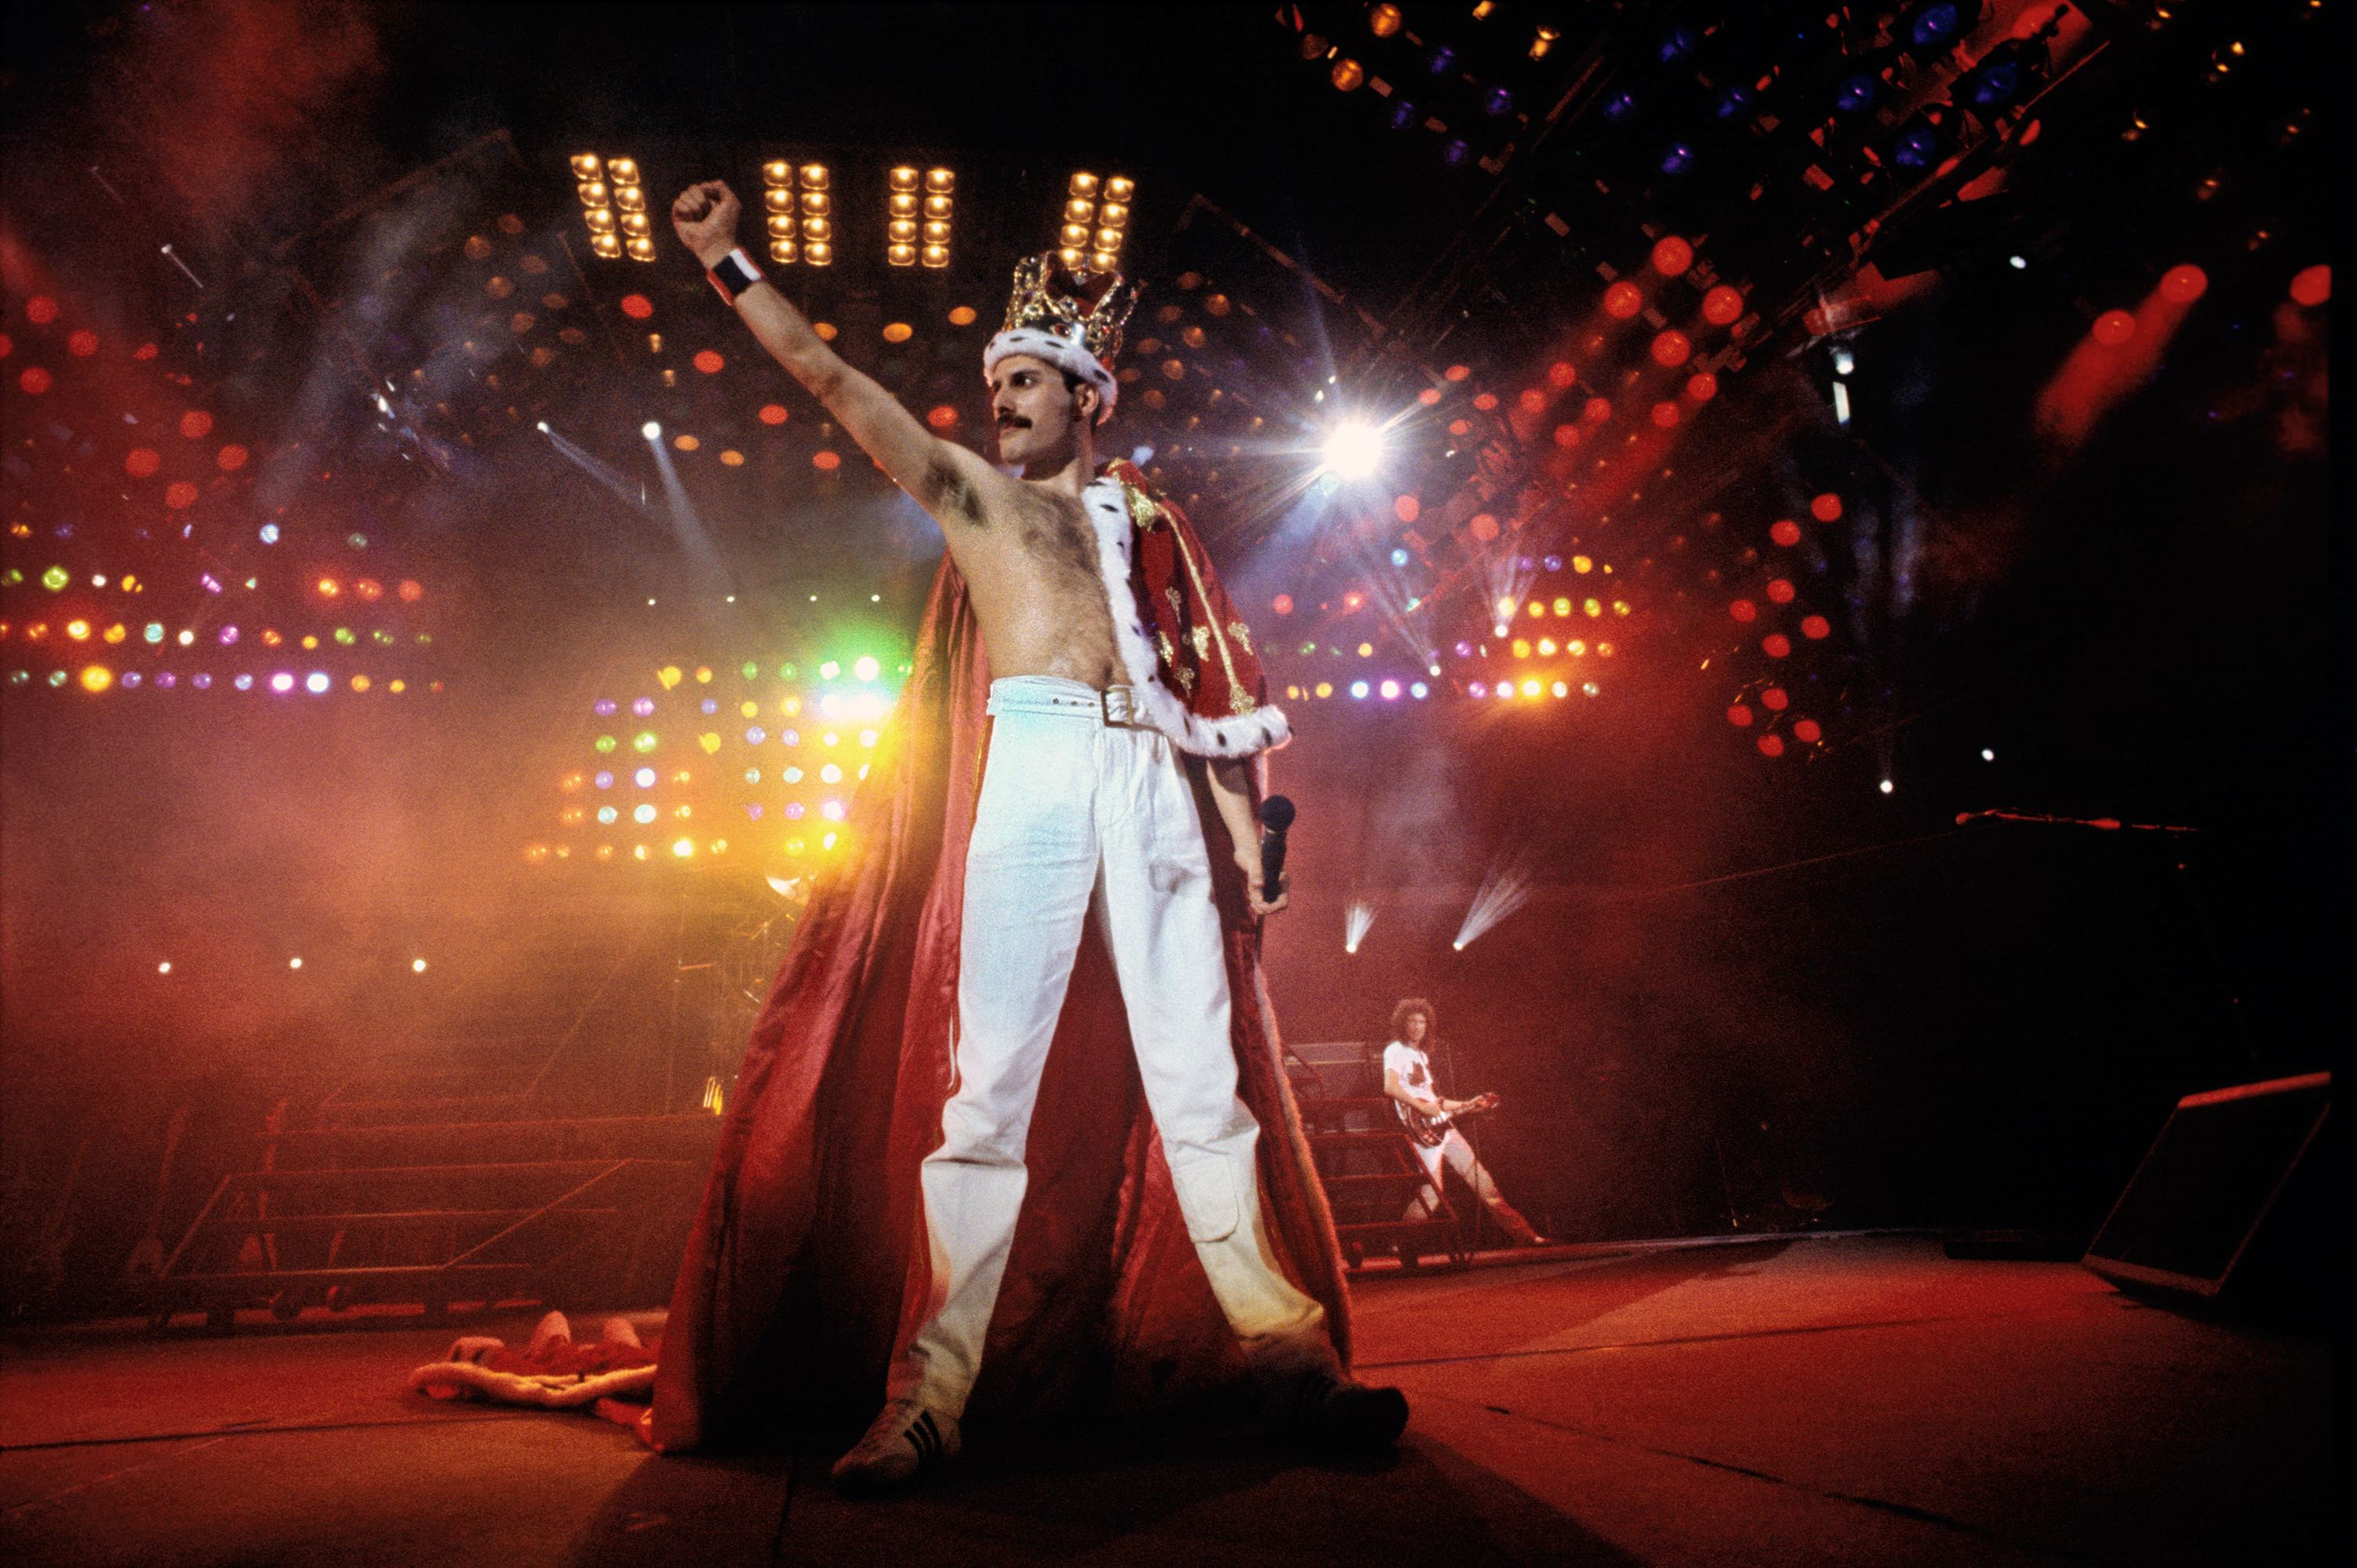 Previously Unseen Photos Of Queen To Tour The UK Amateur